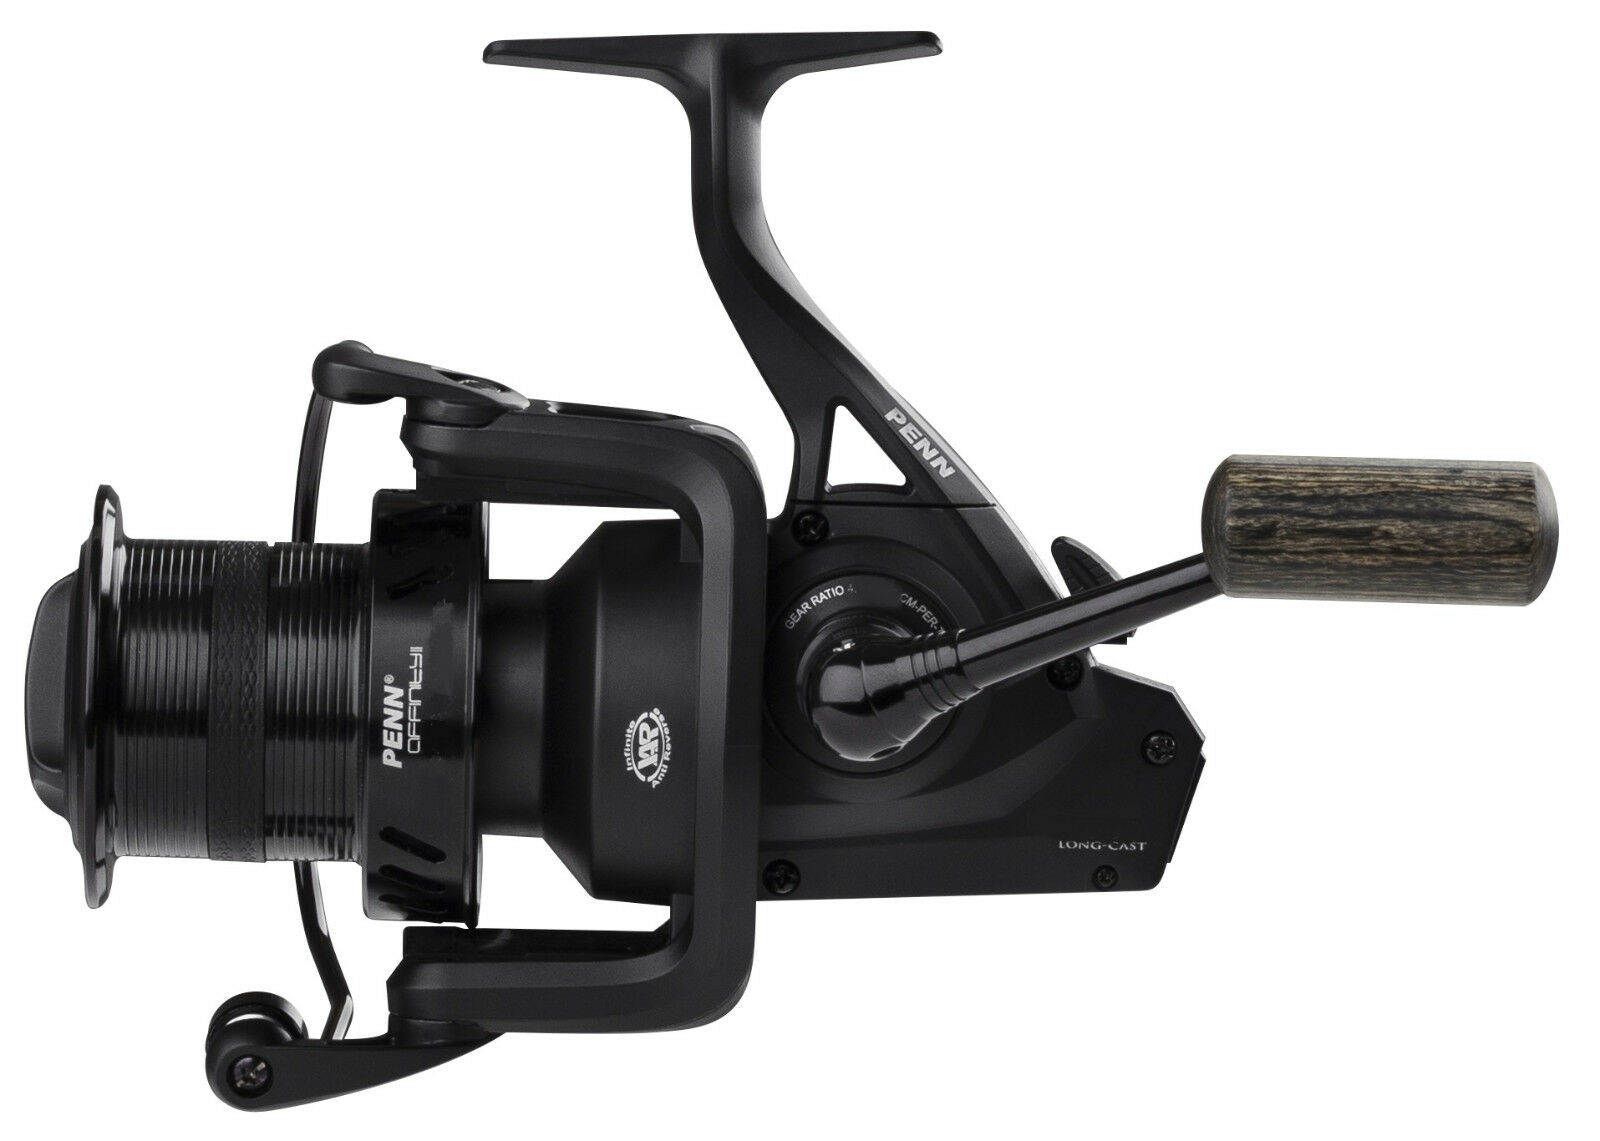 Penn Affinity II 8000 LC Rolle Karpfenrolle Reel Weitwurfrolle